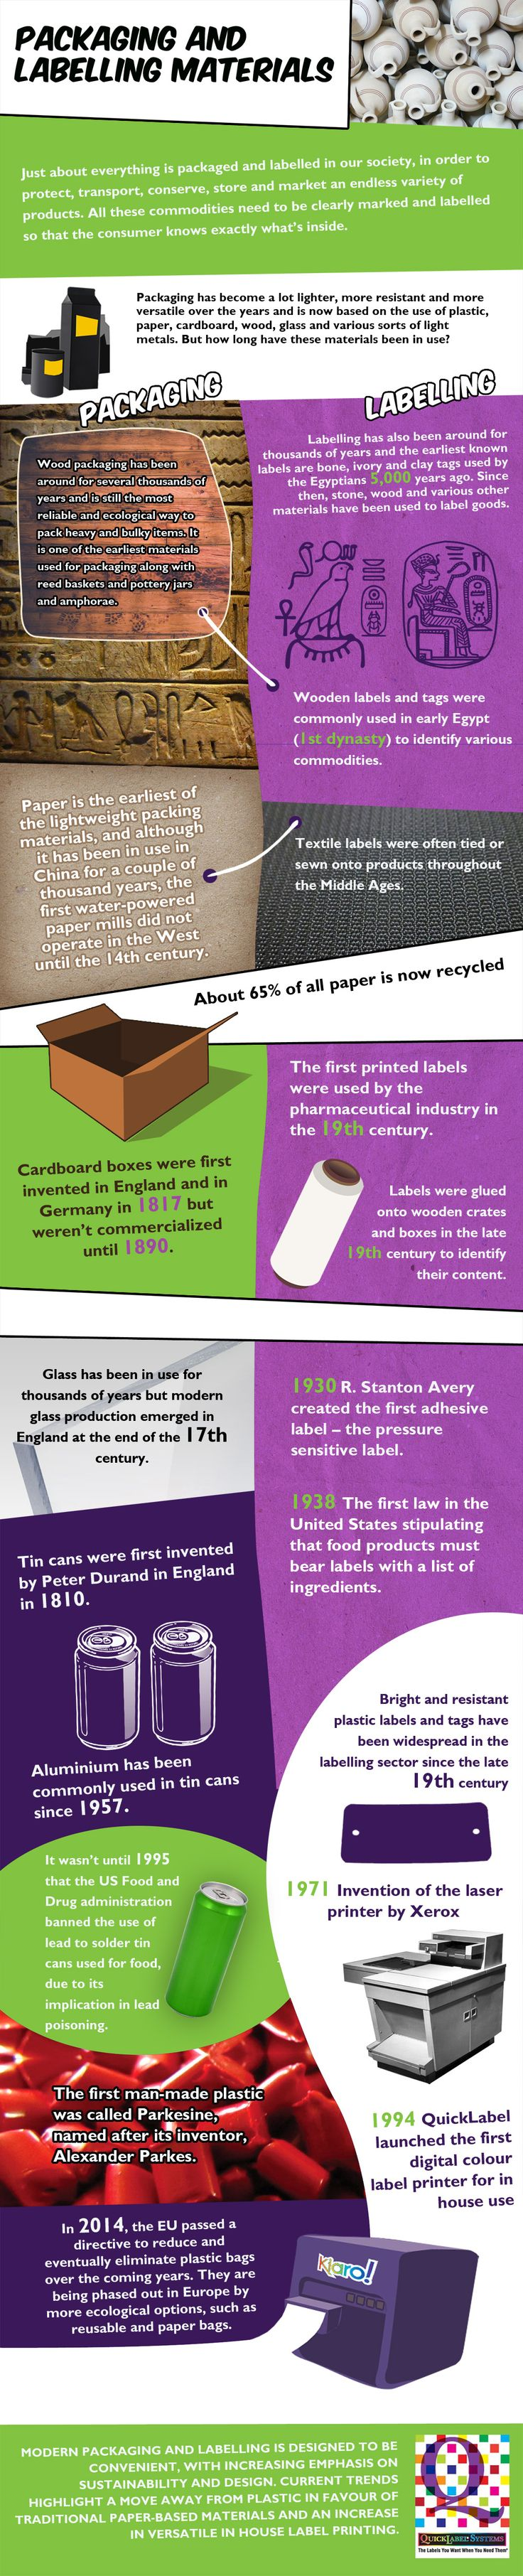 Label Printing image by QuickLabel Systems - This Infographic from www.quicklabel.co.uk shows how packaging and labelling materials have changed over the years.  In house label printers have been produced by QuickLabel since 1994 to make life easier for manufacturers.